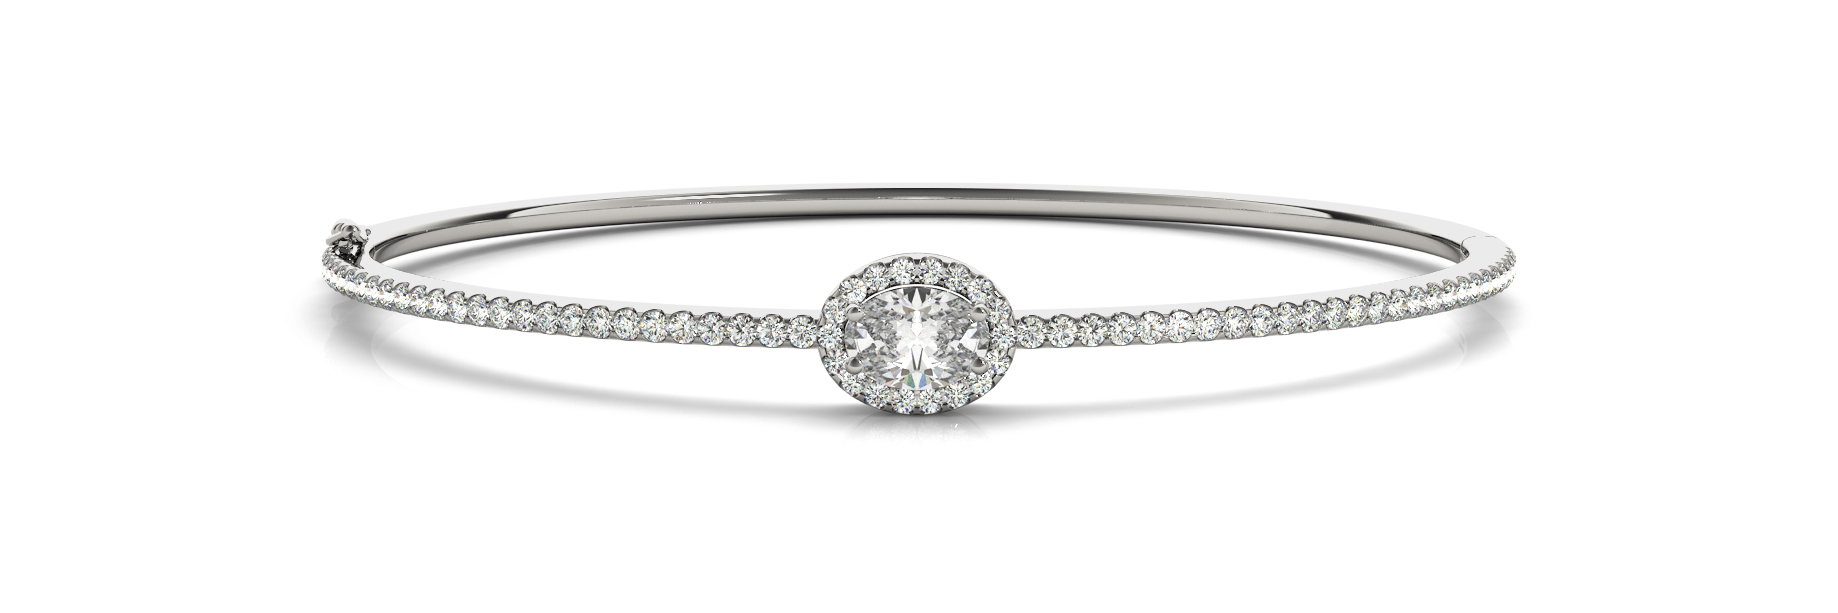 Oval & Round Diamond Center Stone Halo Bangle